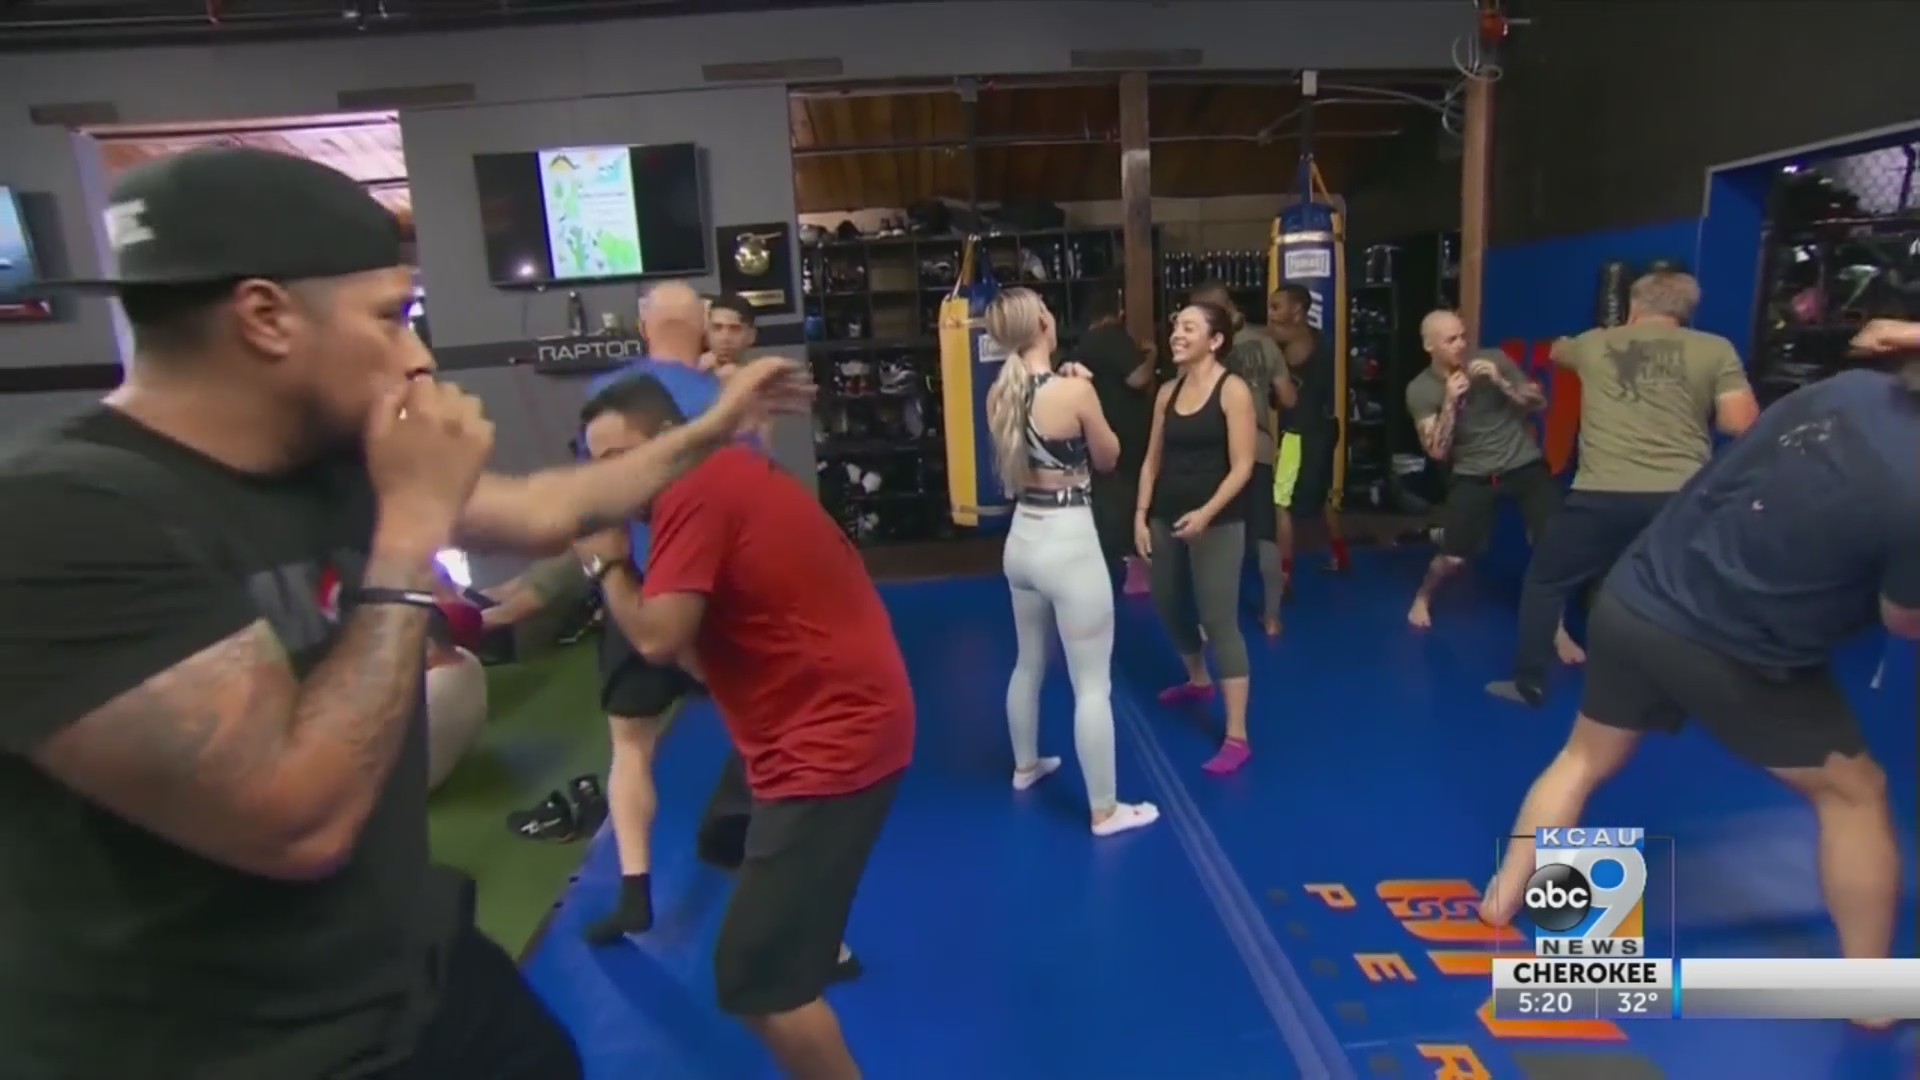 Medical Minute: New Physical Activity Guidelines